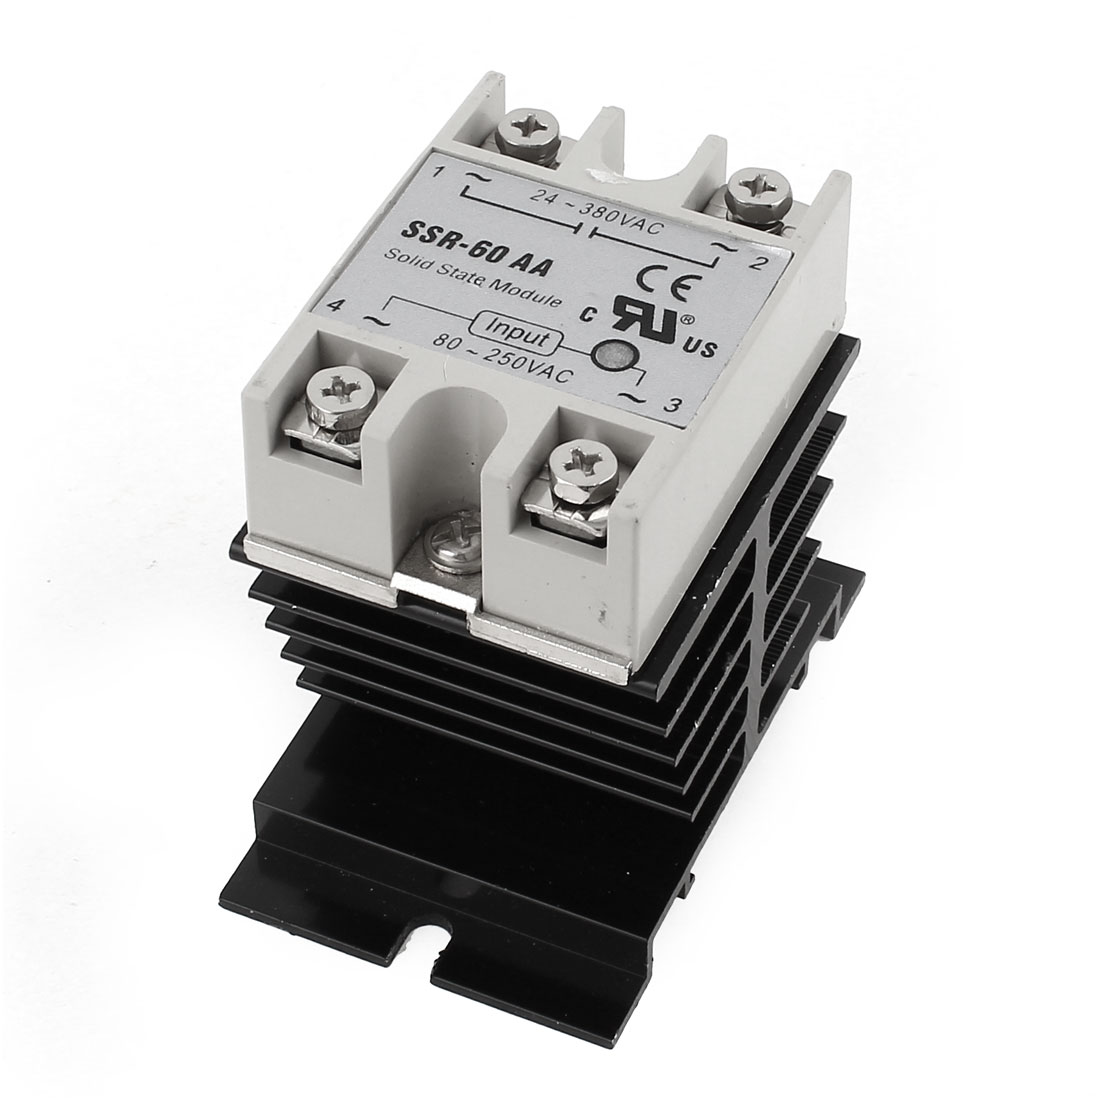 AC-AC 80-250V 24-380V 60A 4 Screw Terminal Single Phase Black Aluminum Heat Sink SSR Solid State Relay